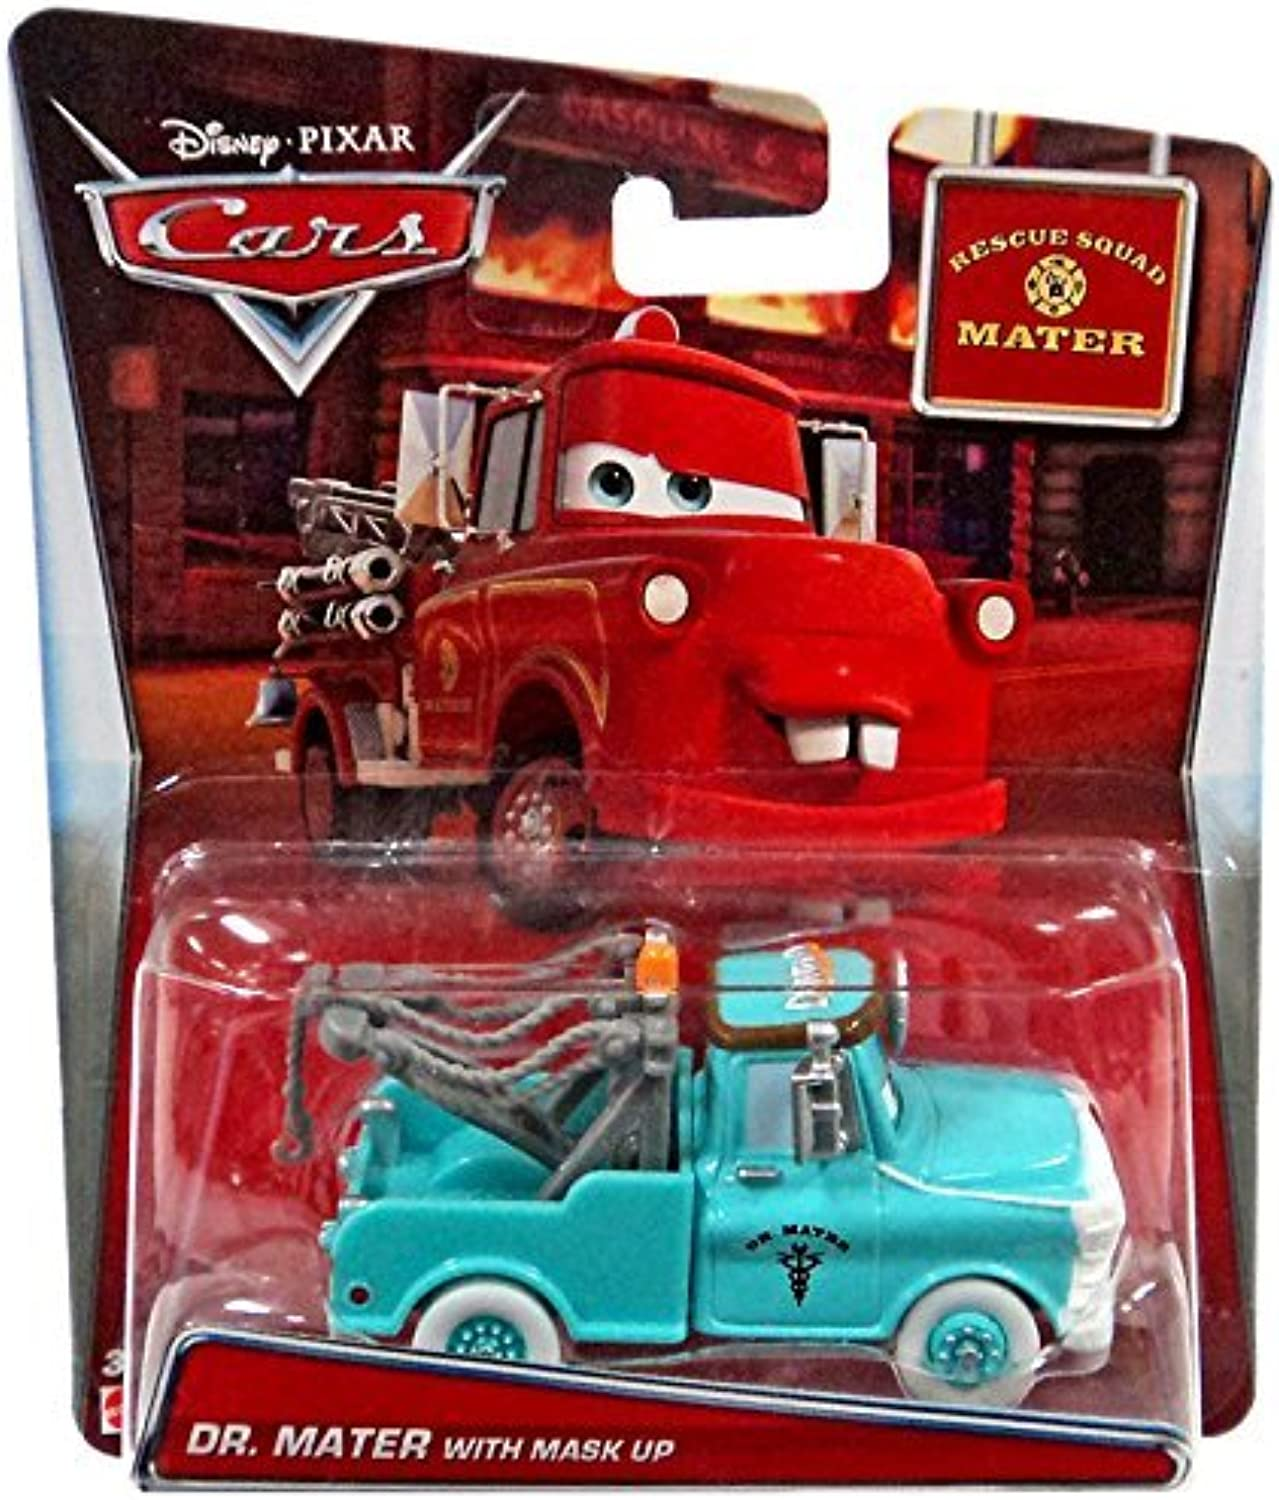 Dr. Mater with Mask Up Rescue Squad Mater by Disney